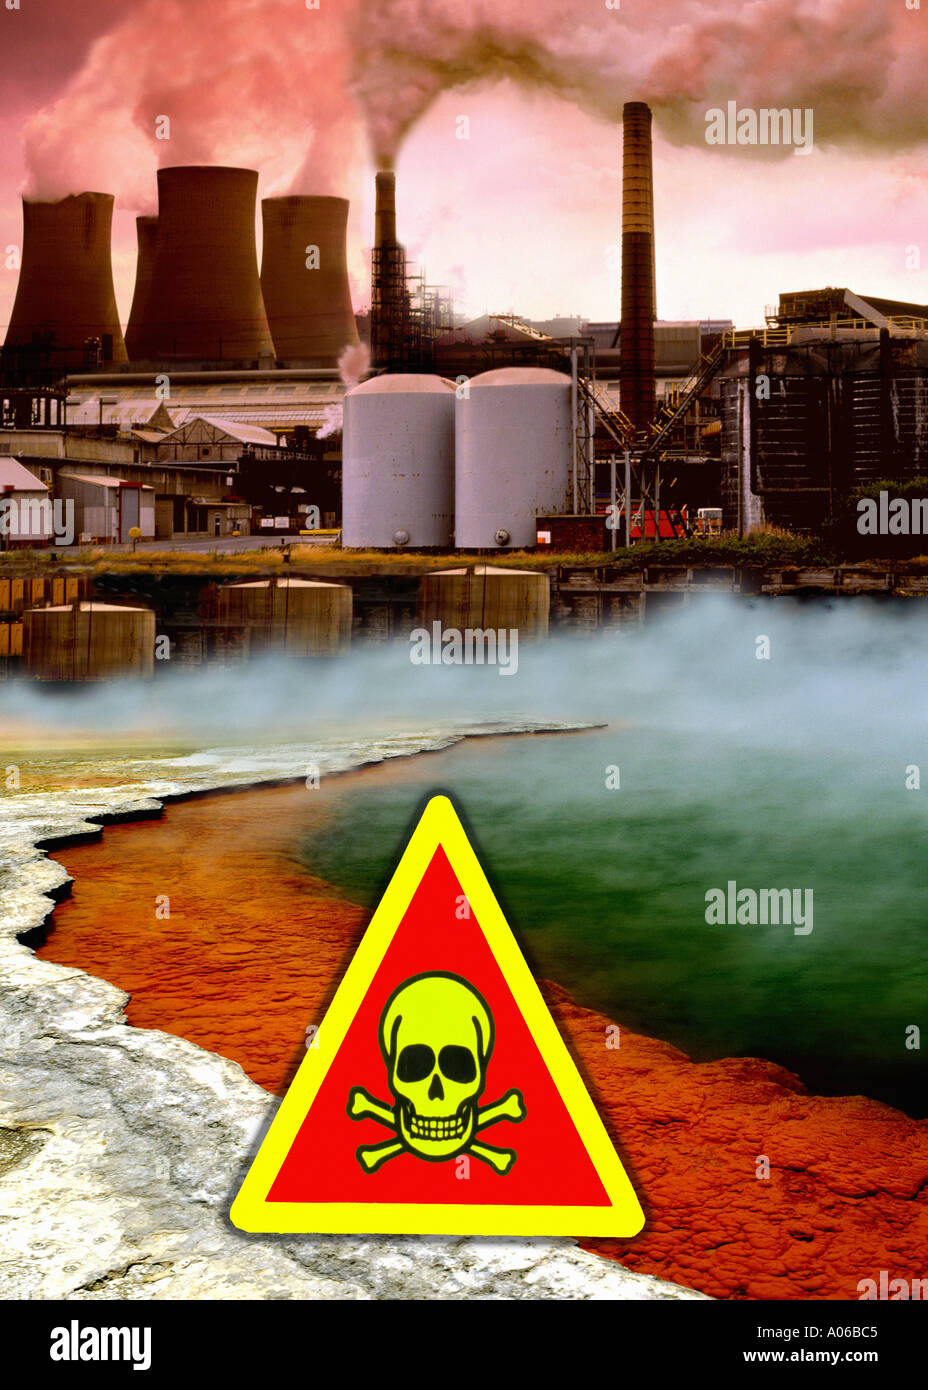 Image result for images of pollution and toxic waste